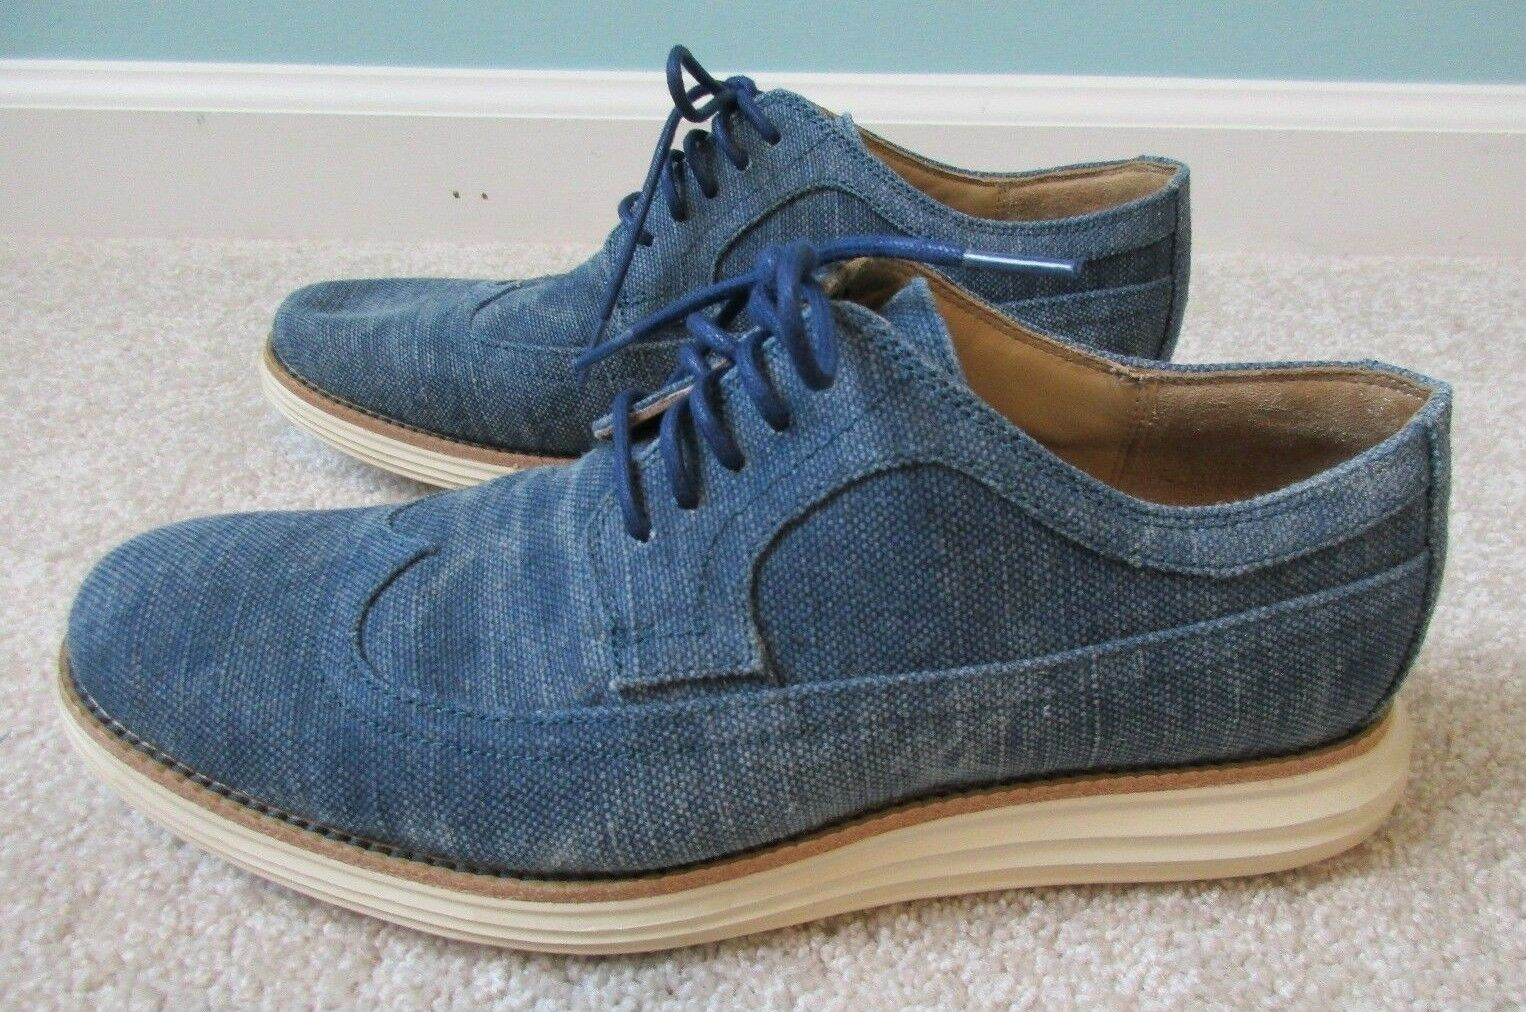 Cole Haan Lunargrand Long Wingtip Marine bluee Canvas Oxford C13969 Men's Sz 8.5M